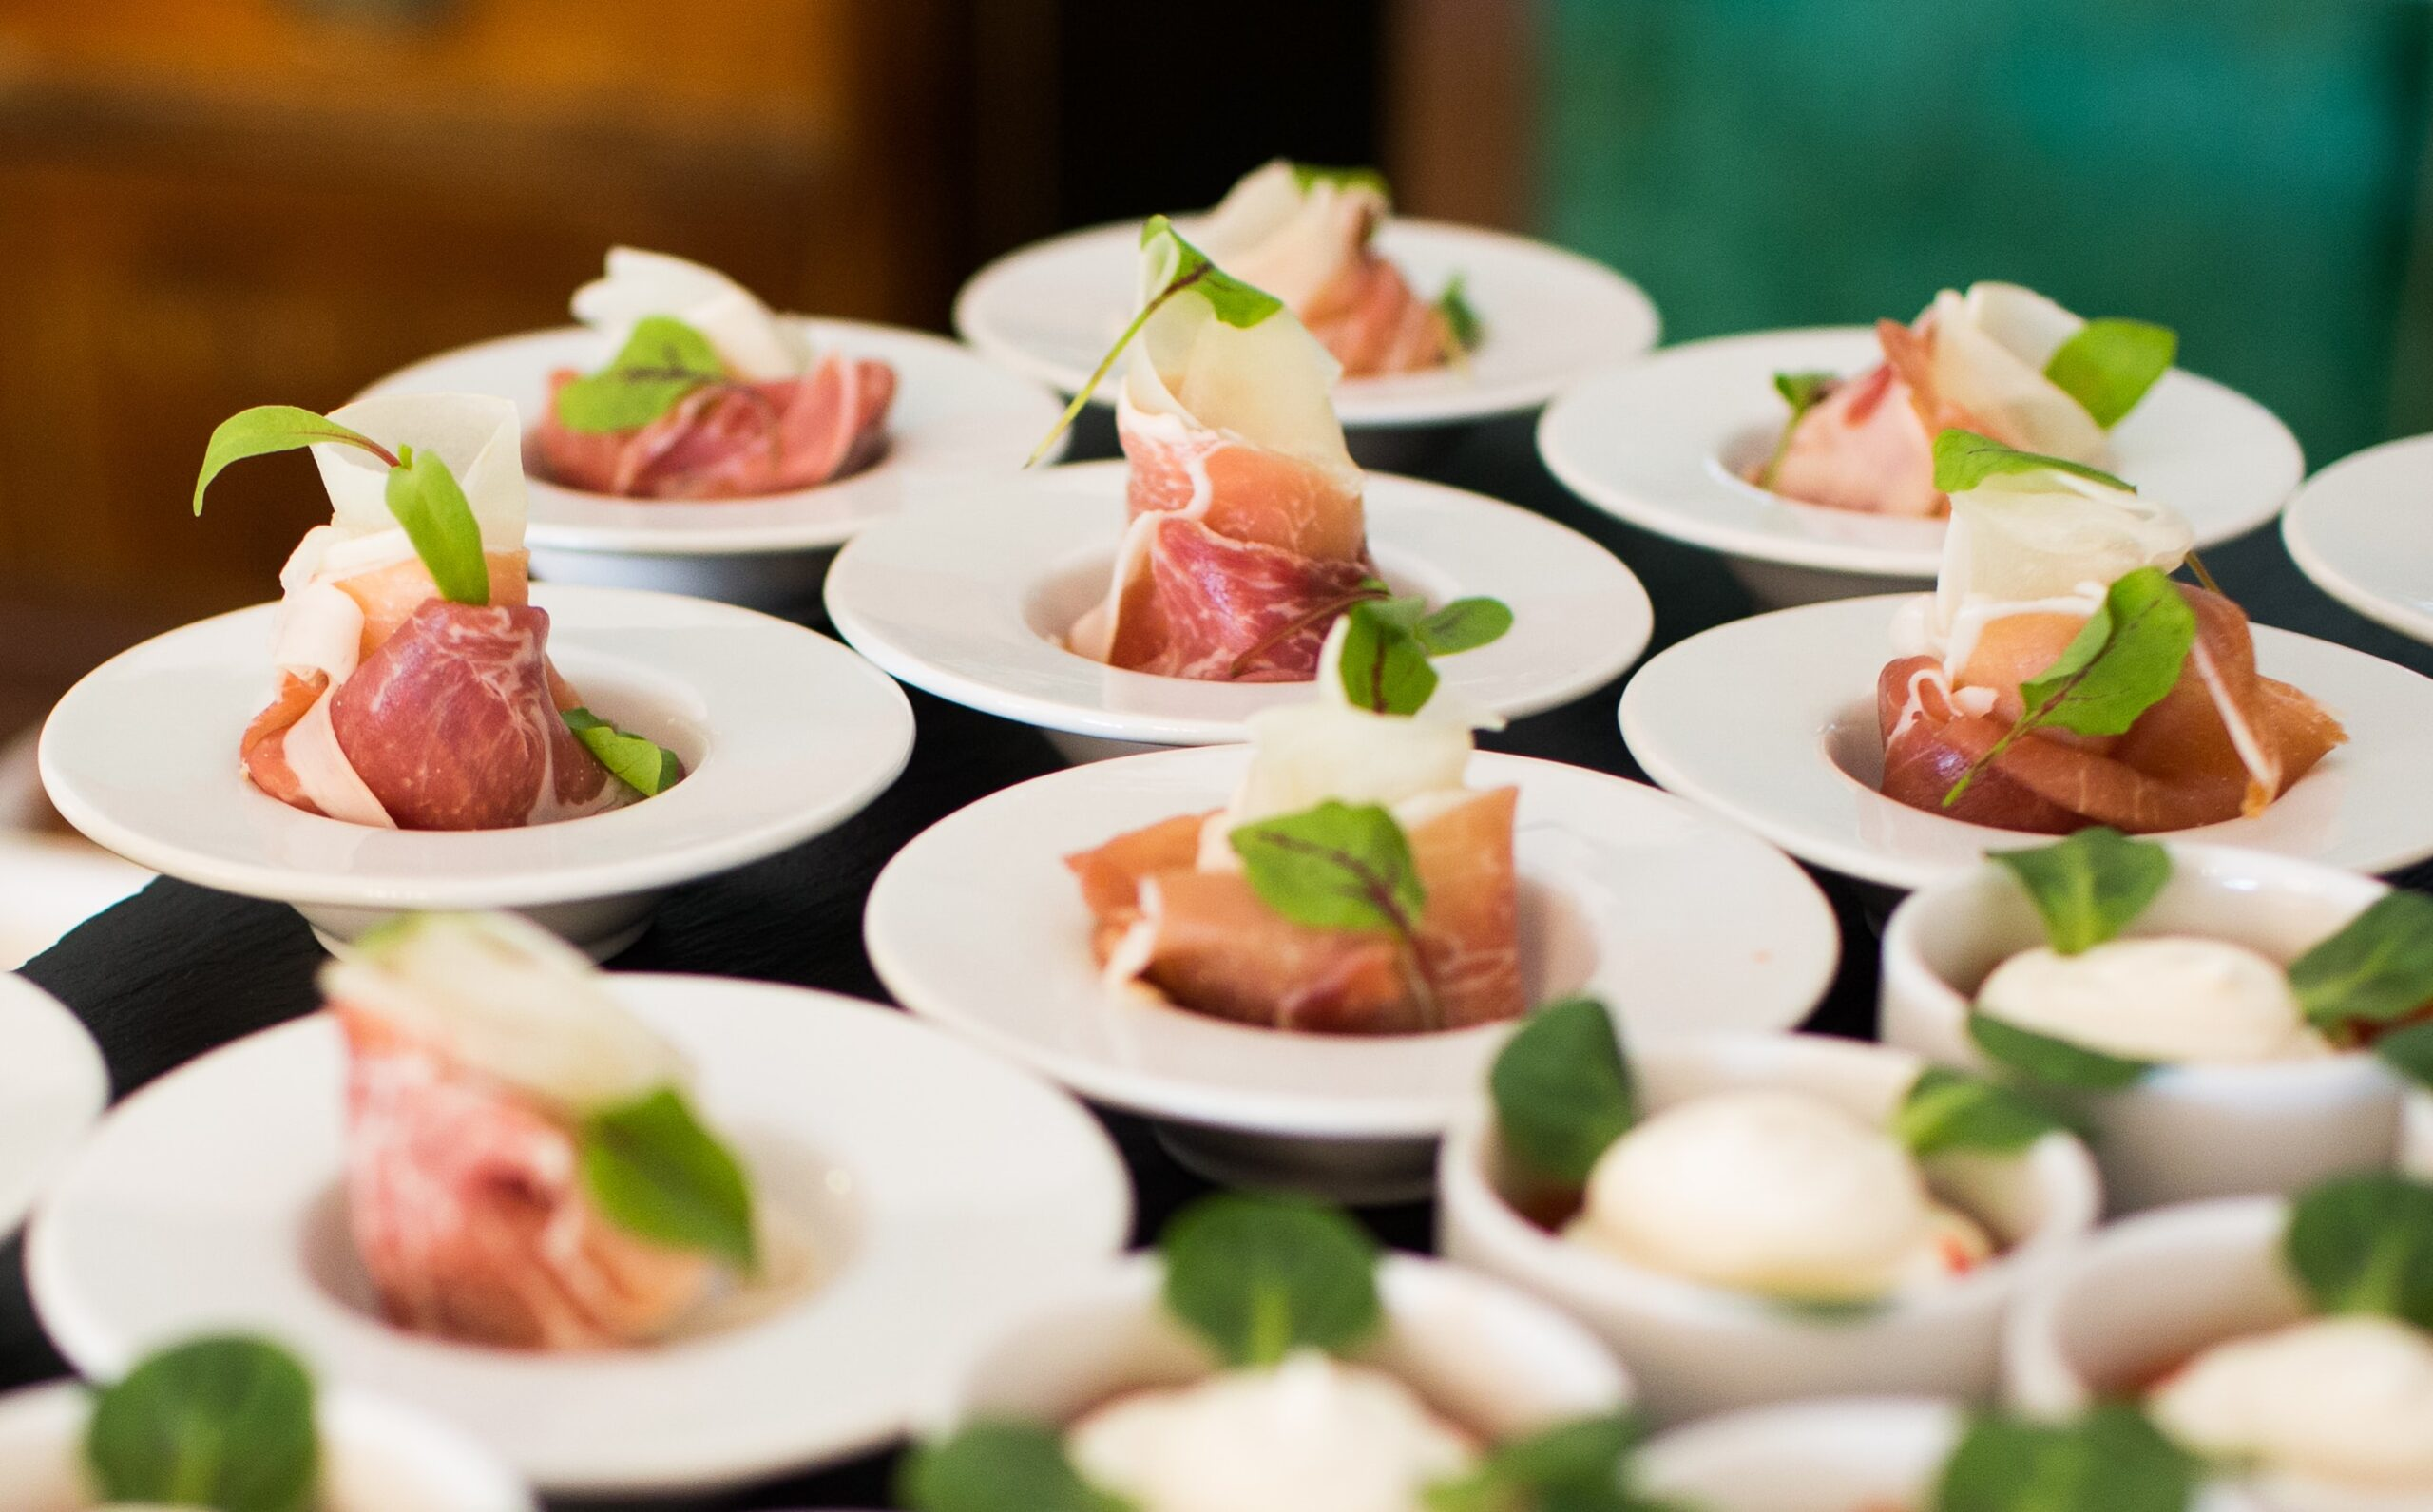 Catering On A Budget In Vancouver? Choose The Best Company!